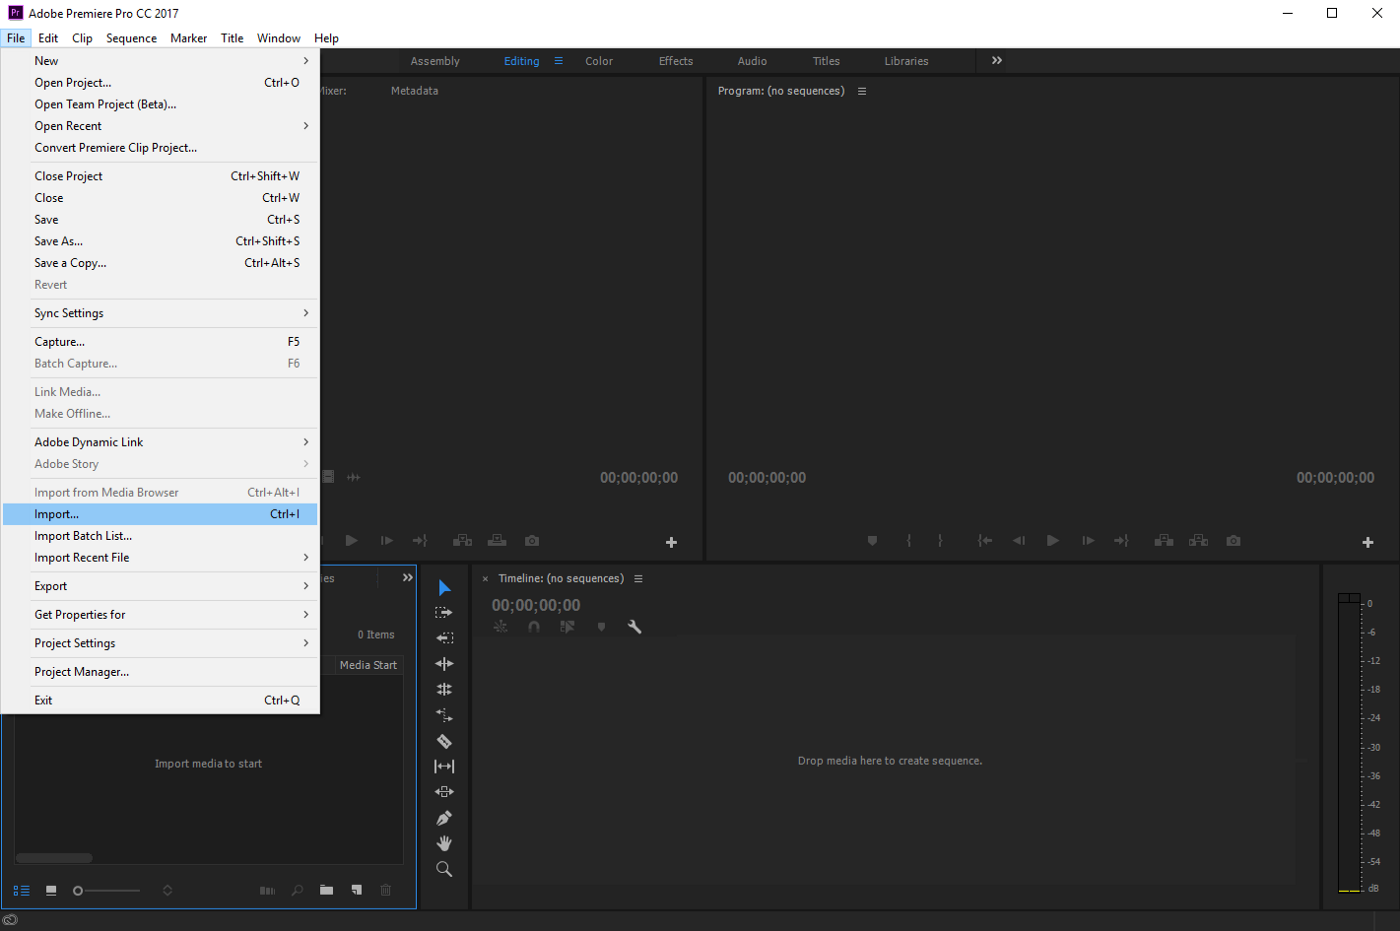 Adobe Premiere Pro: export from Simon Says and import directly into